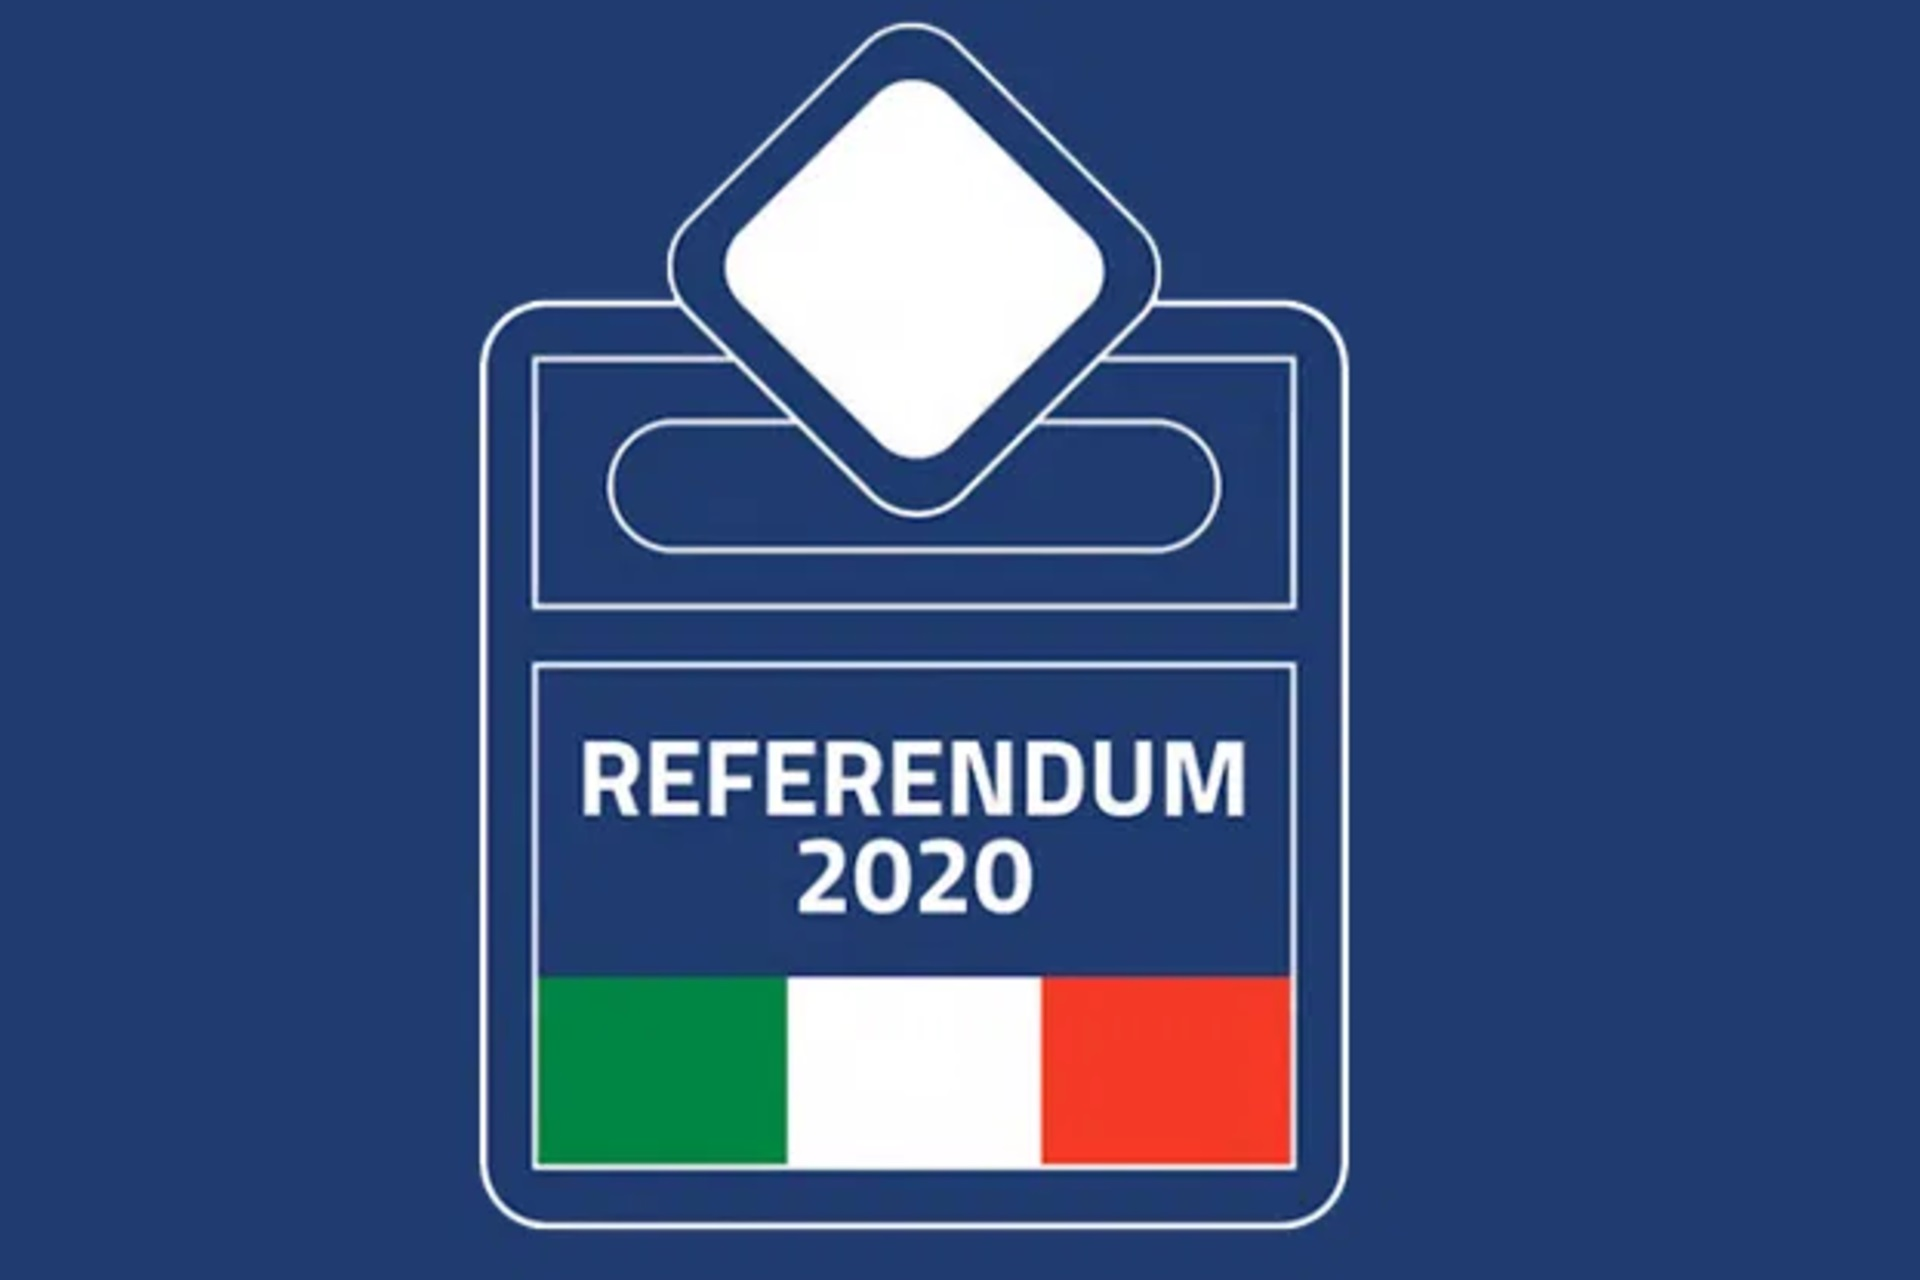 REFERENDUM: VOTO IN SICUREZZA